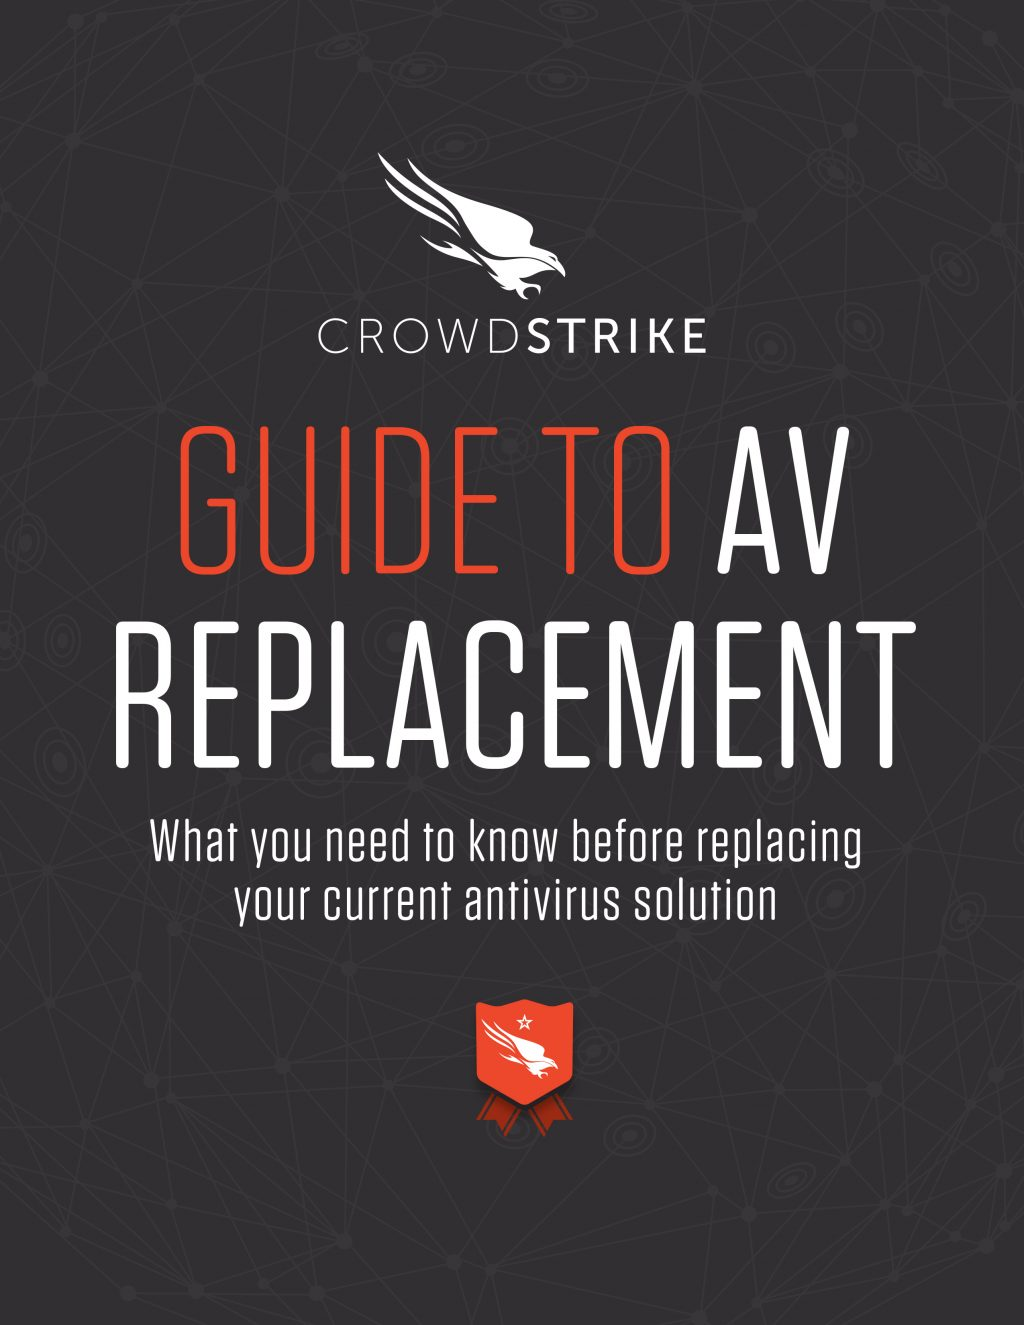 crowdstrike-0003-Guide_to_AV_Replacement_What_You_Need_to_Know_Before_Replacing_Your_Current_AV_Solution-1-1024x1325